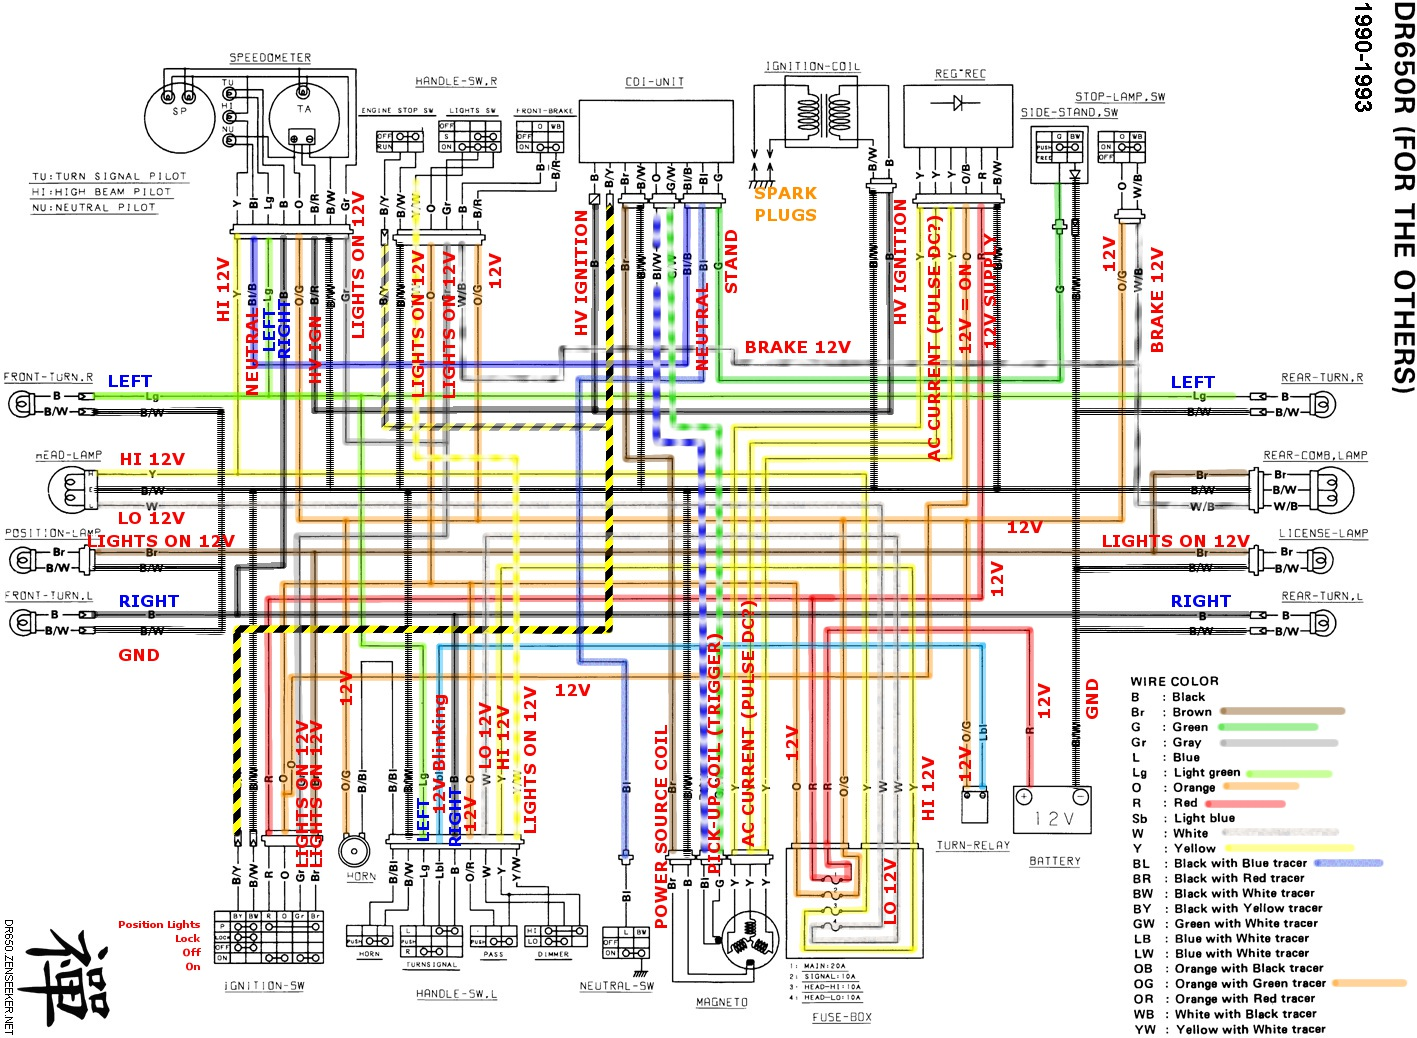 2000 toyota celica fuse box diagram data wiring diagrams u2022 rh mikeadkinsguitar com